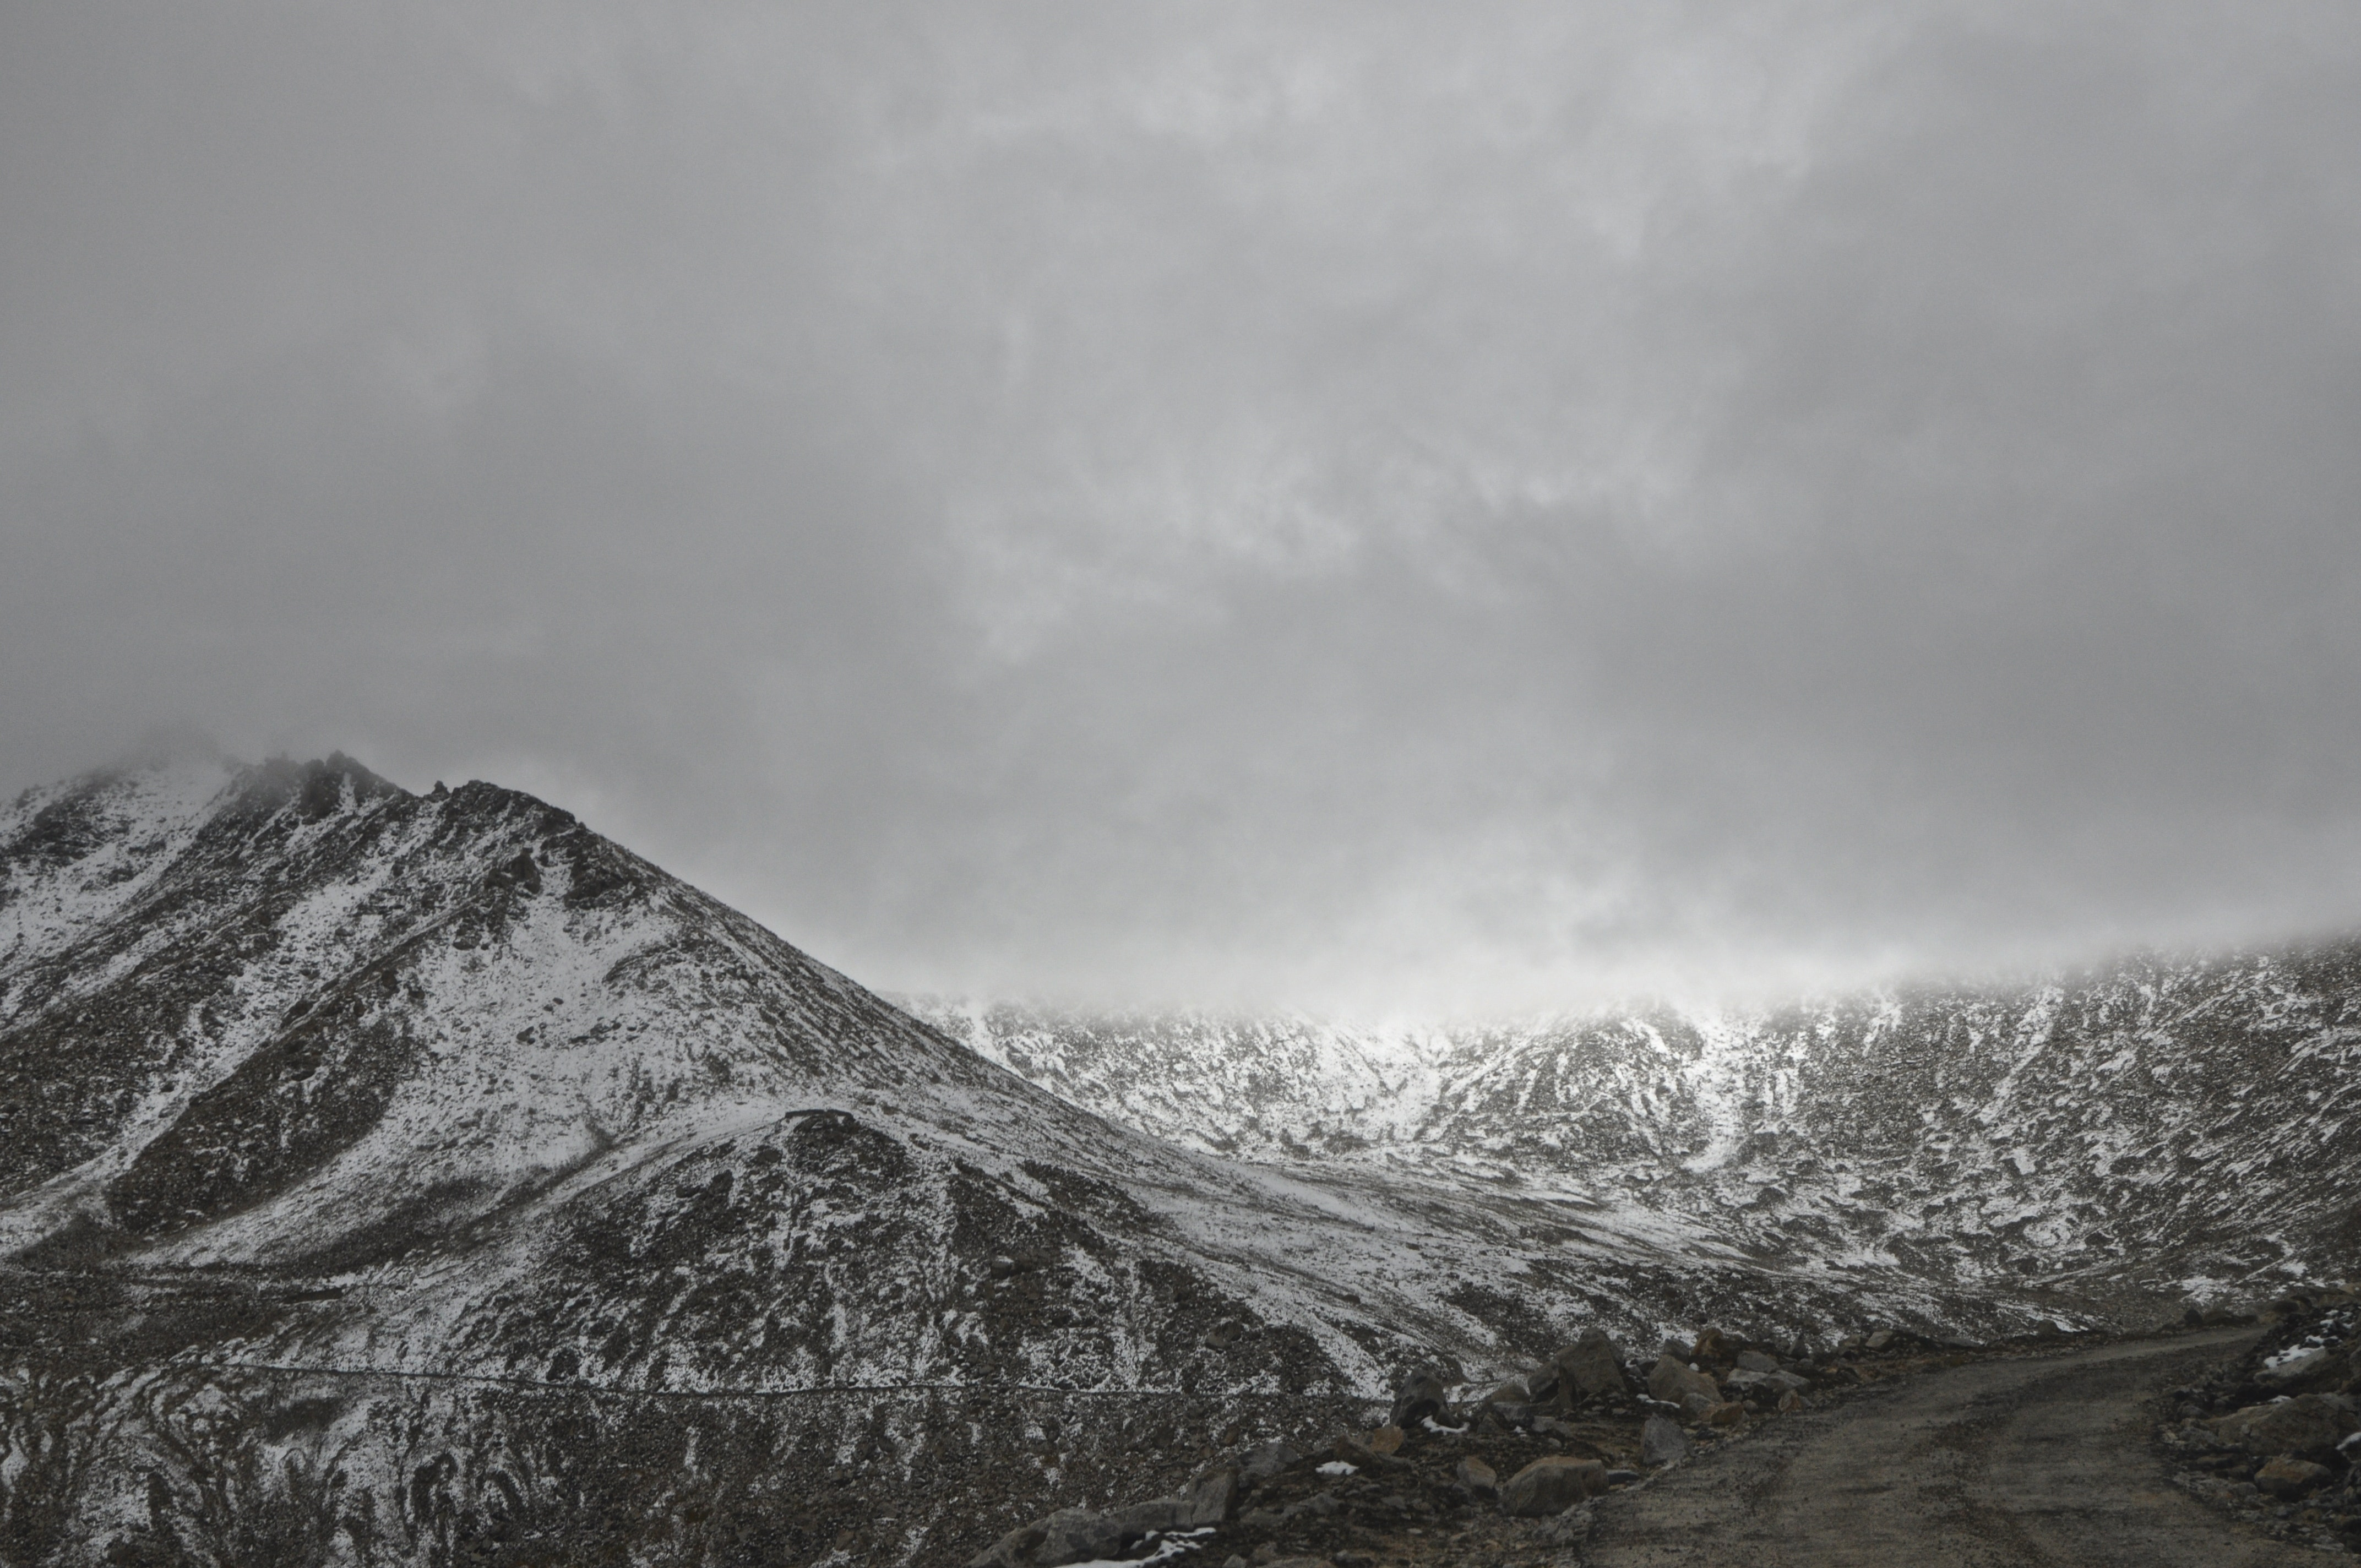 Snow Covered Mountain, Nature, Winter, Weather, View, HQ Photo